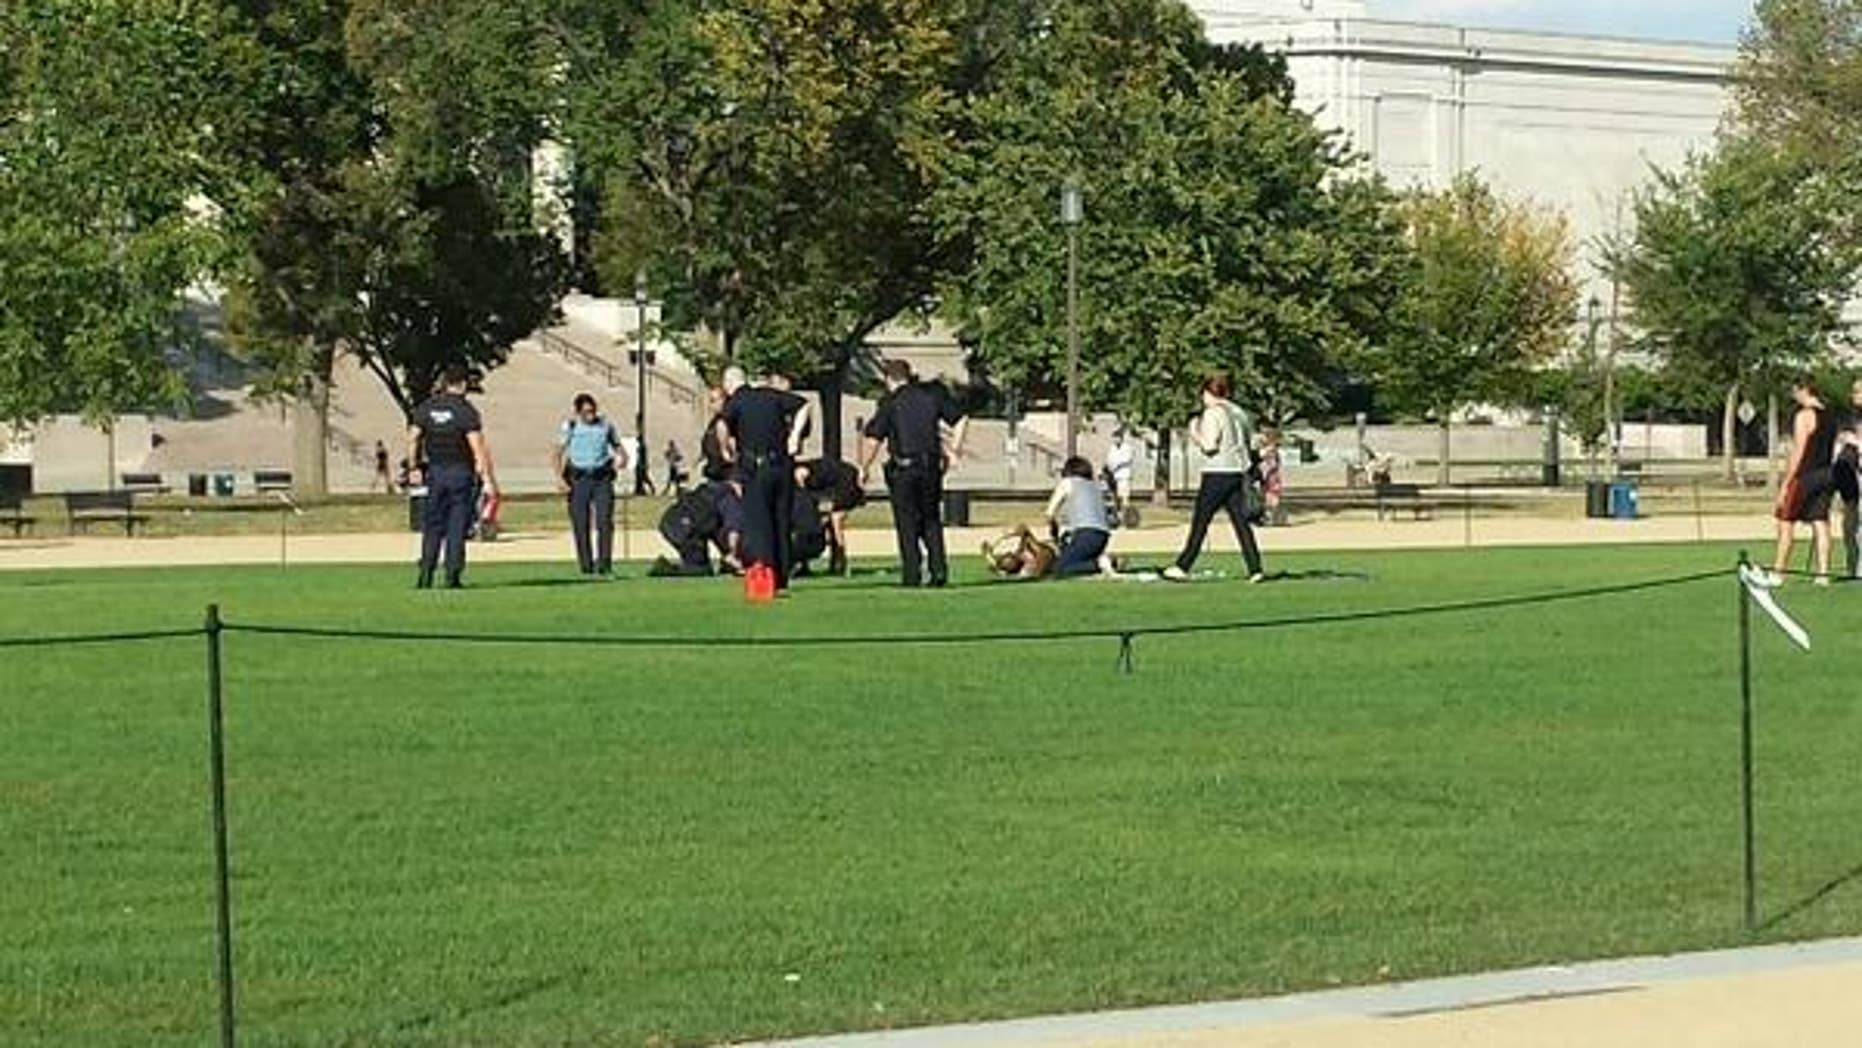 Oct. 4, 2013: Authorities respond to a man who reportedly set himself on fire on the National Mall.